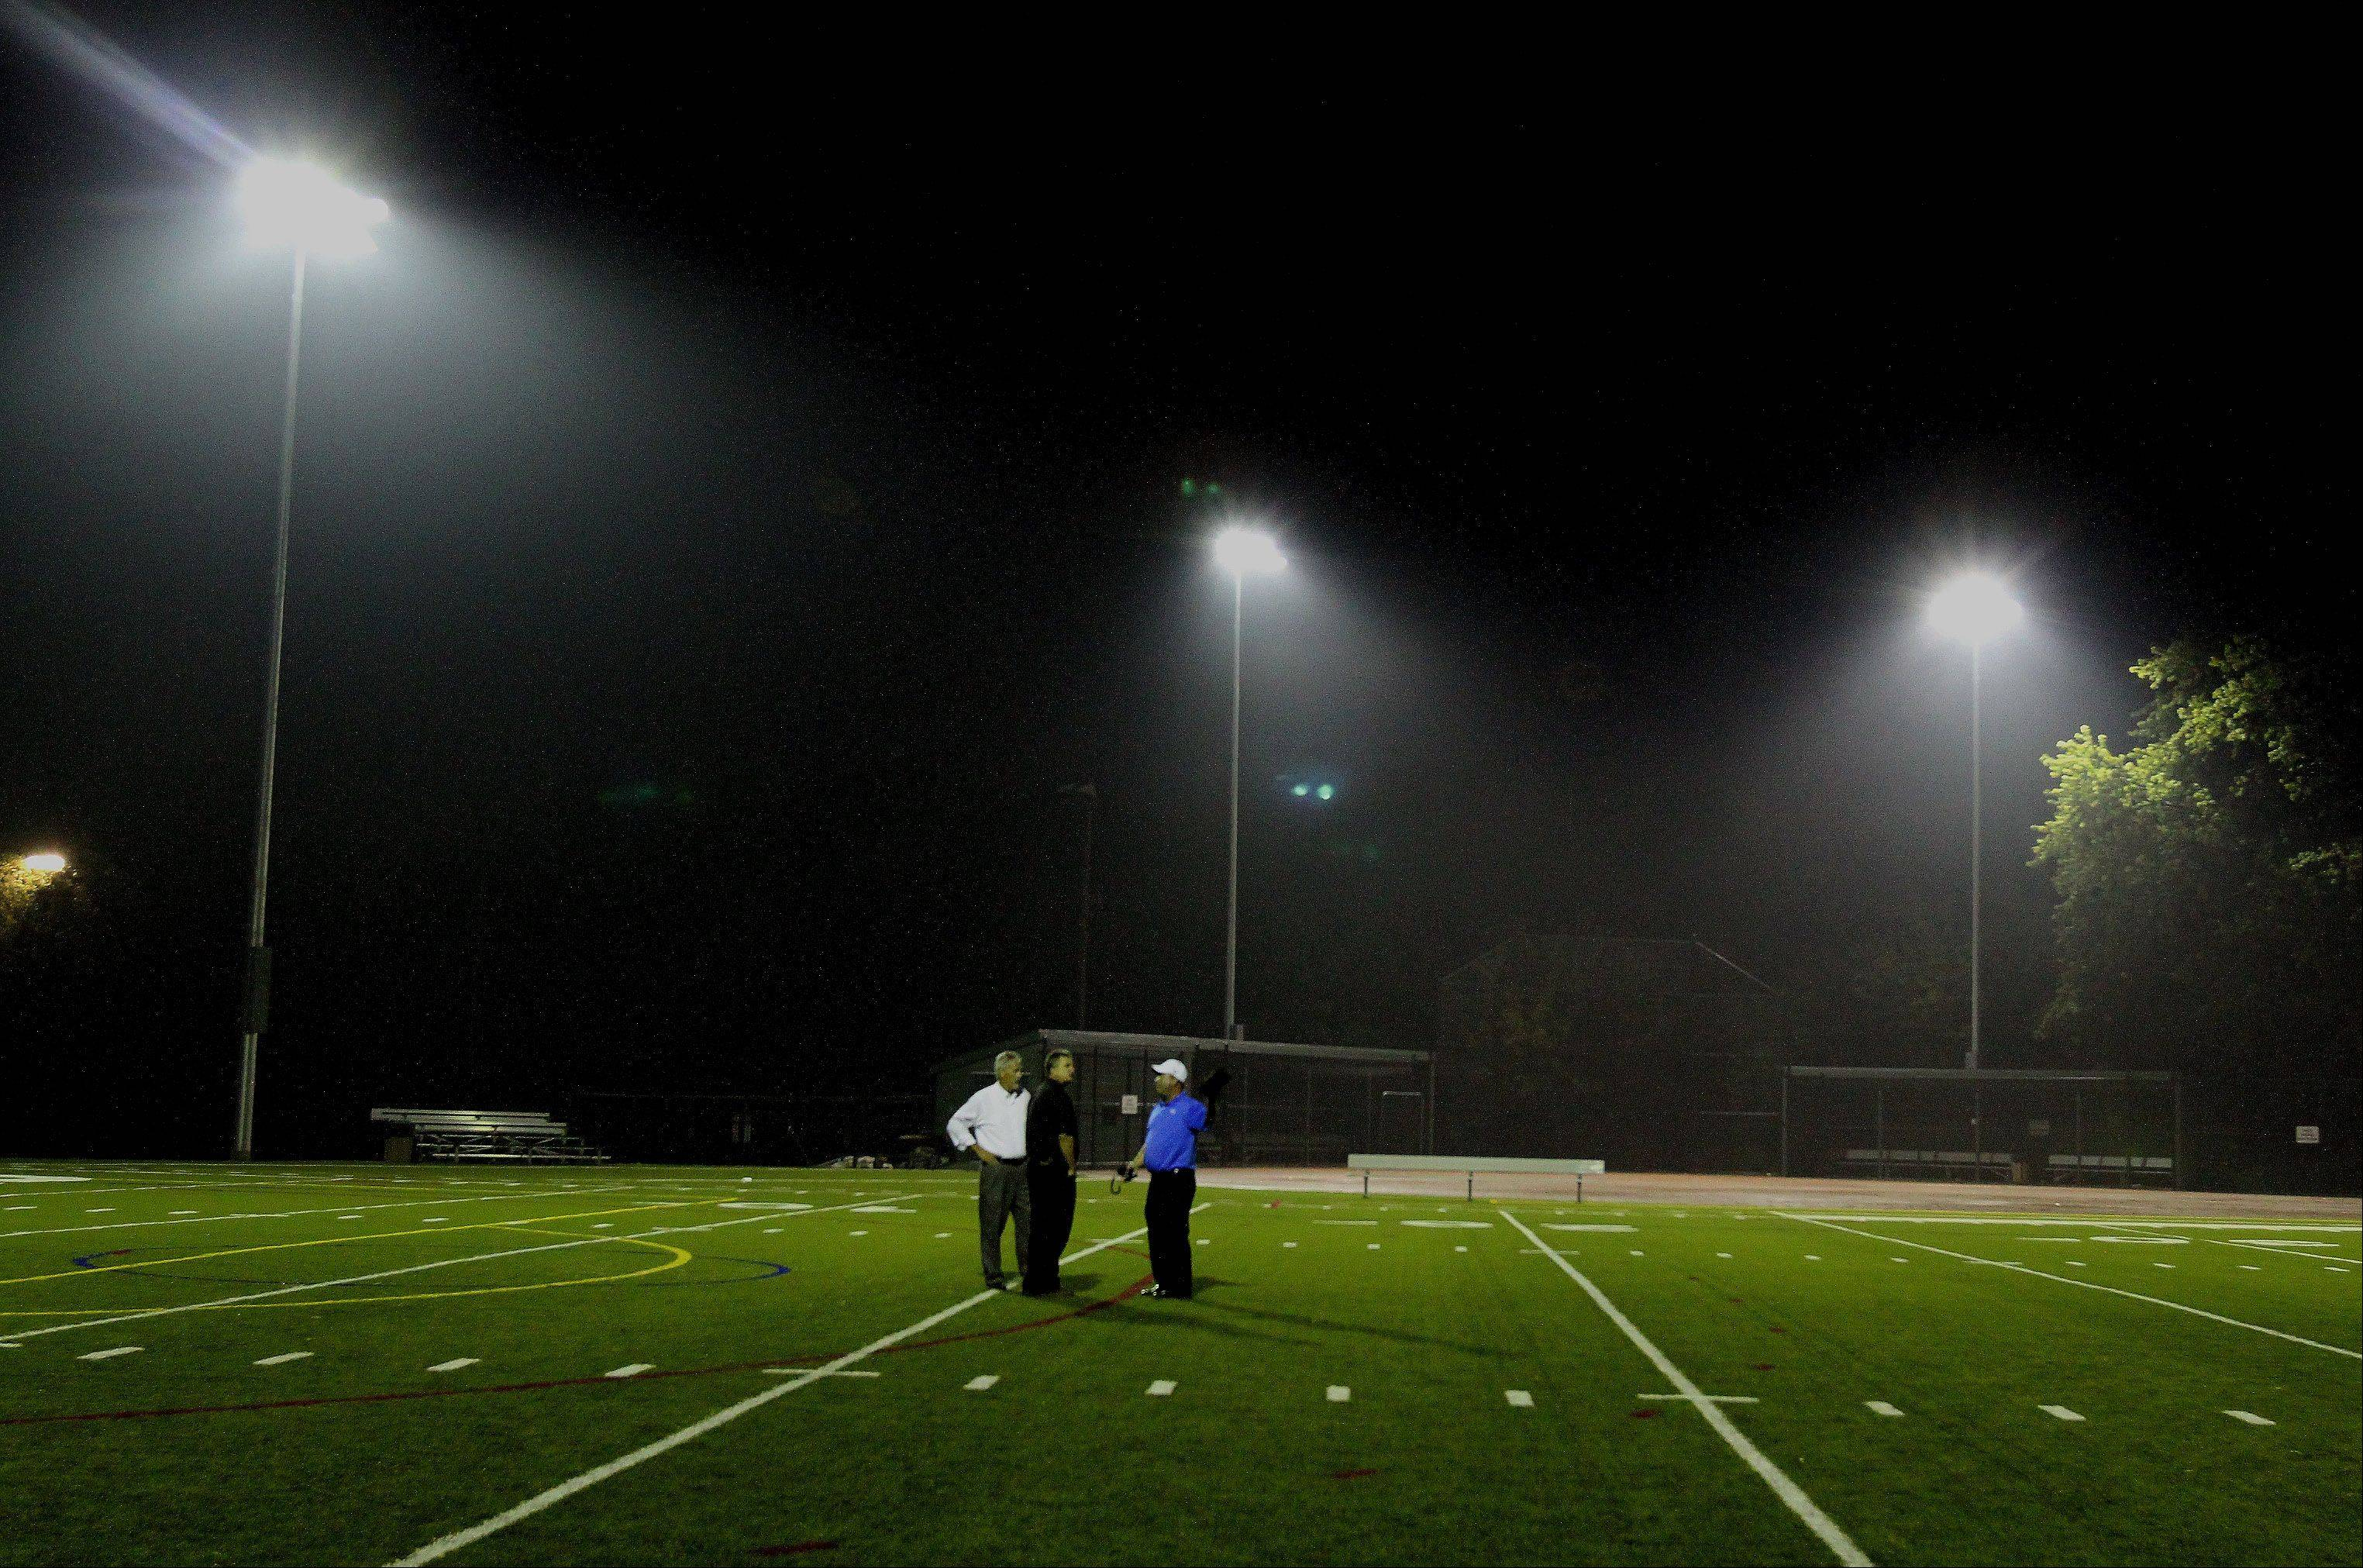 Officials test the new lights Monday at Memorial Field across the street from Glenbard West High School in Glen Ellyn.